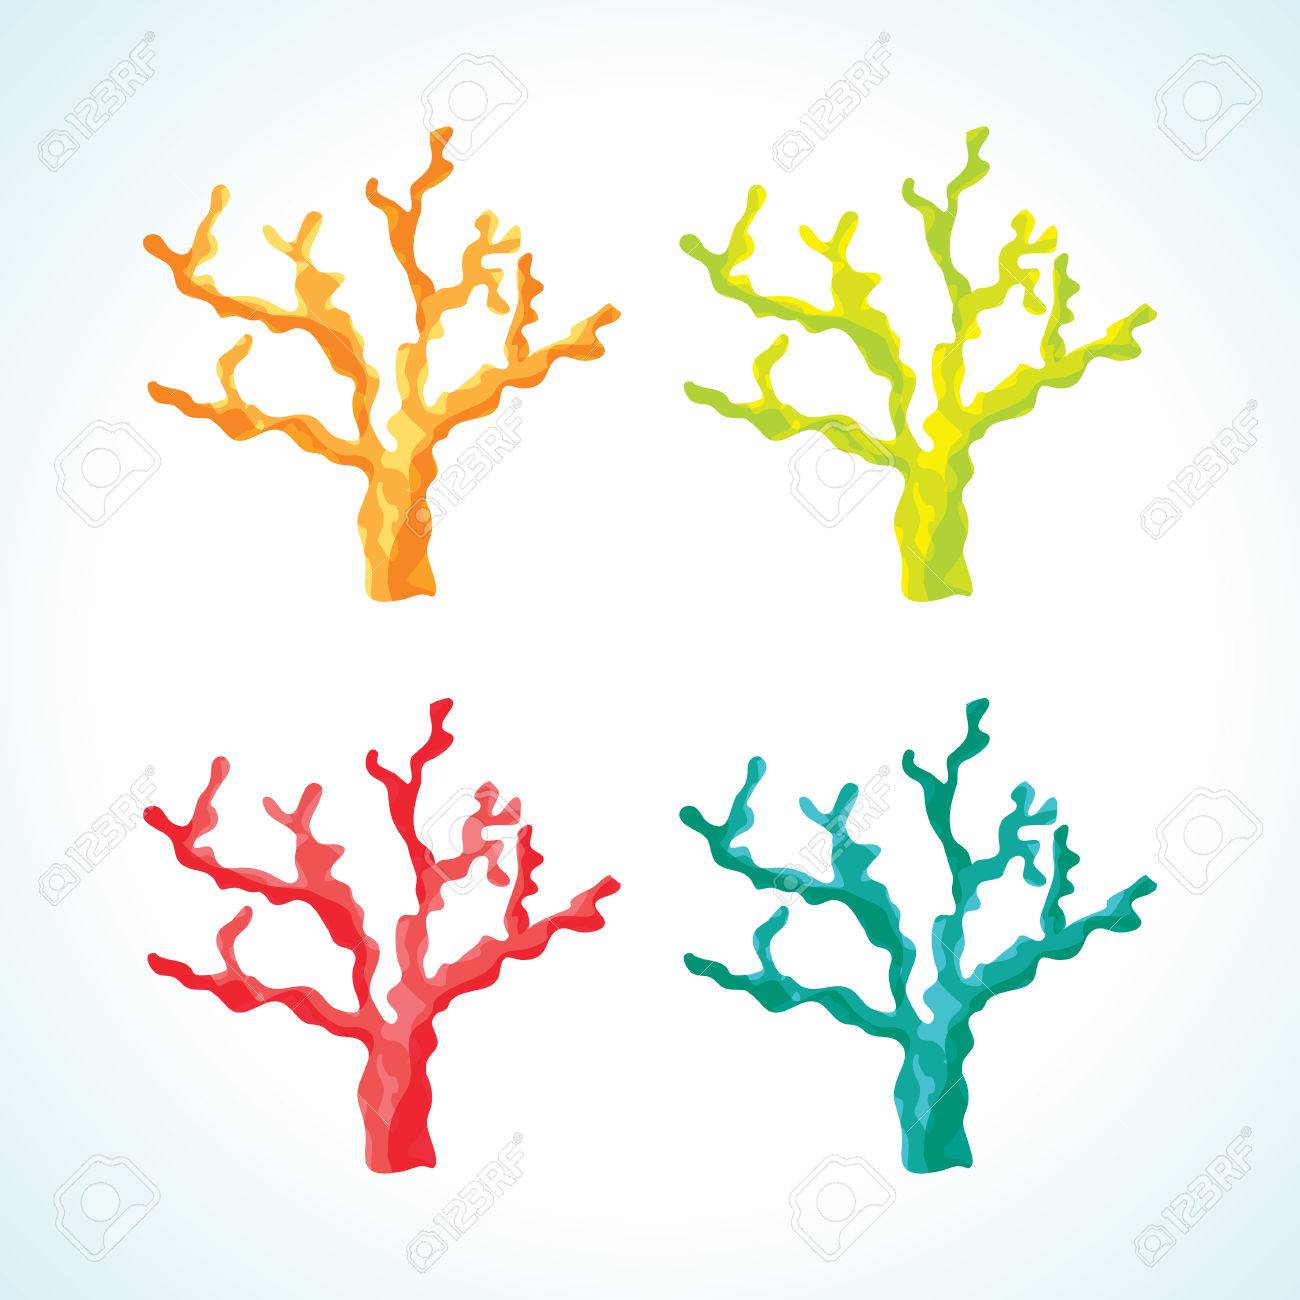 Superior Isolated Sea Coral Vecctor Drawings In Different Color Variations Stock  Vector   78757812